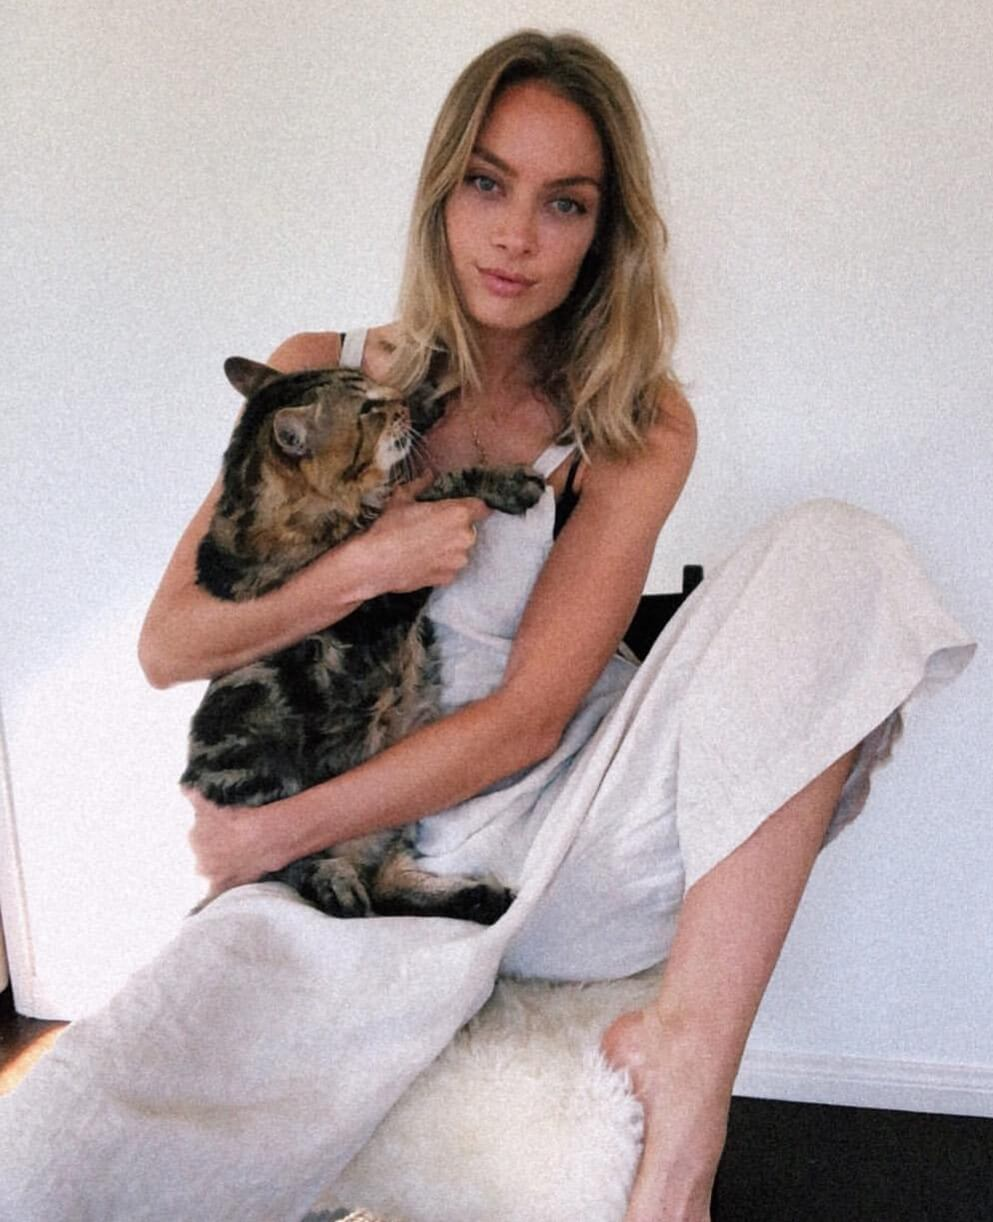 Rachel Skarsten awesonme photo